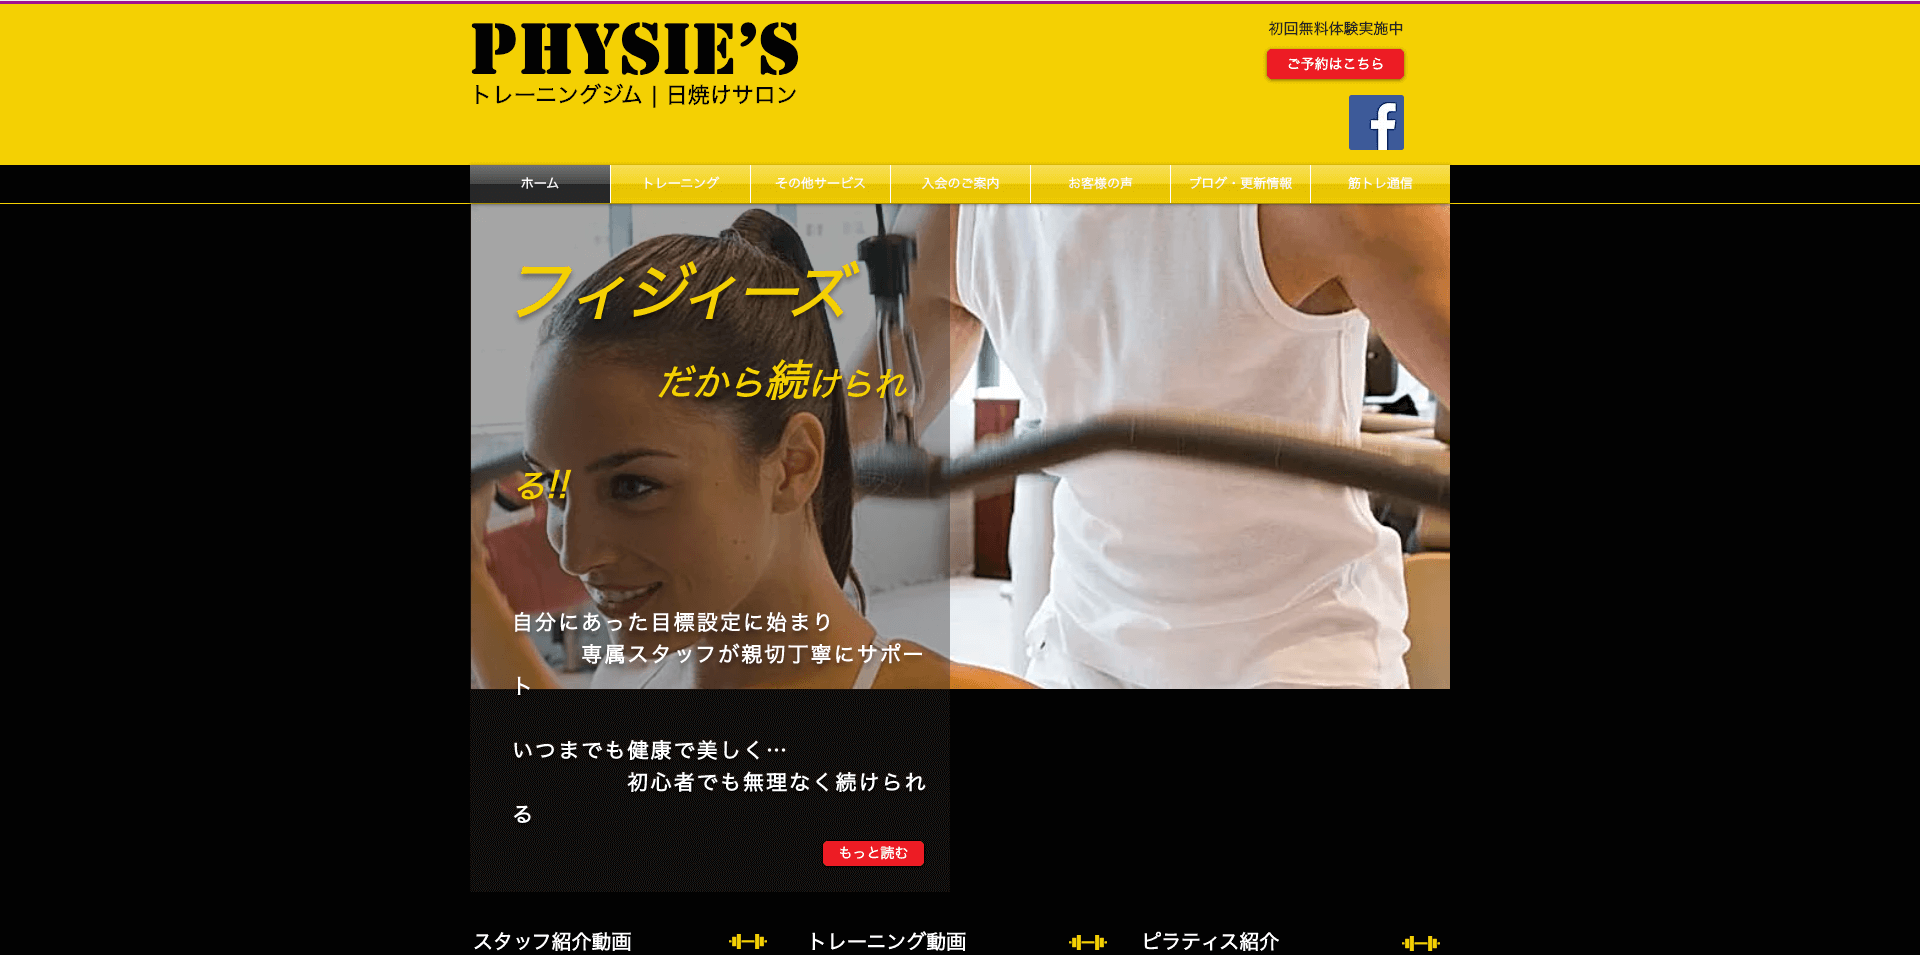 Physies